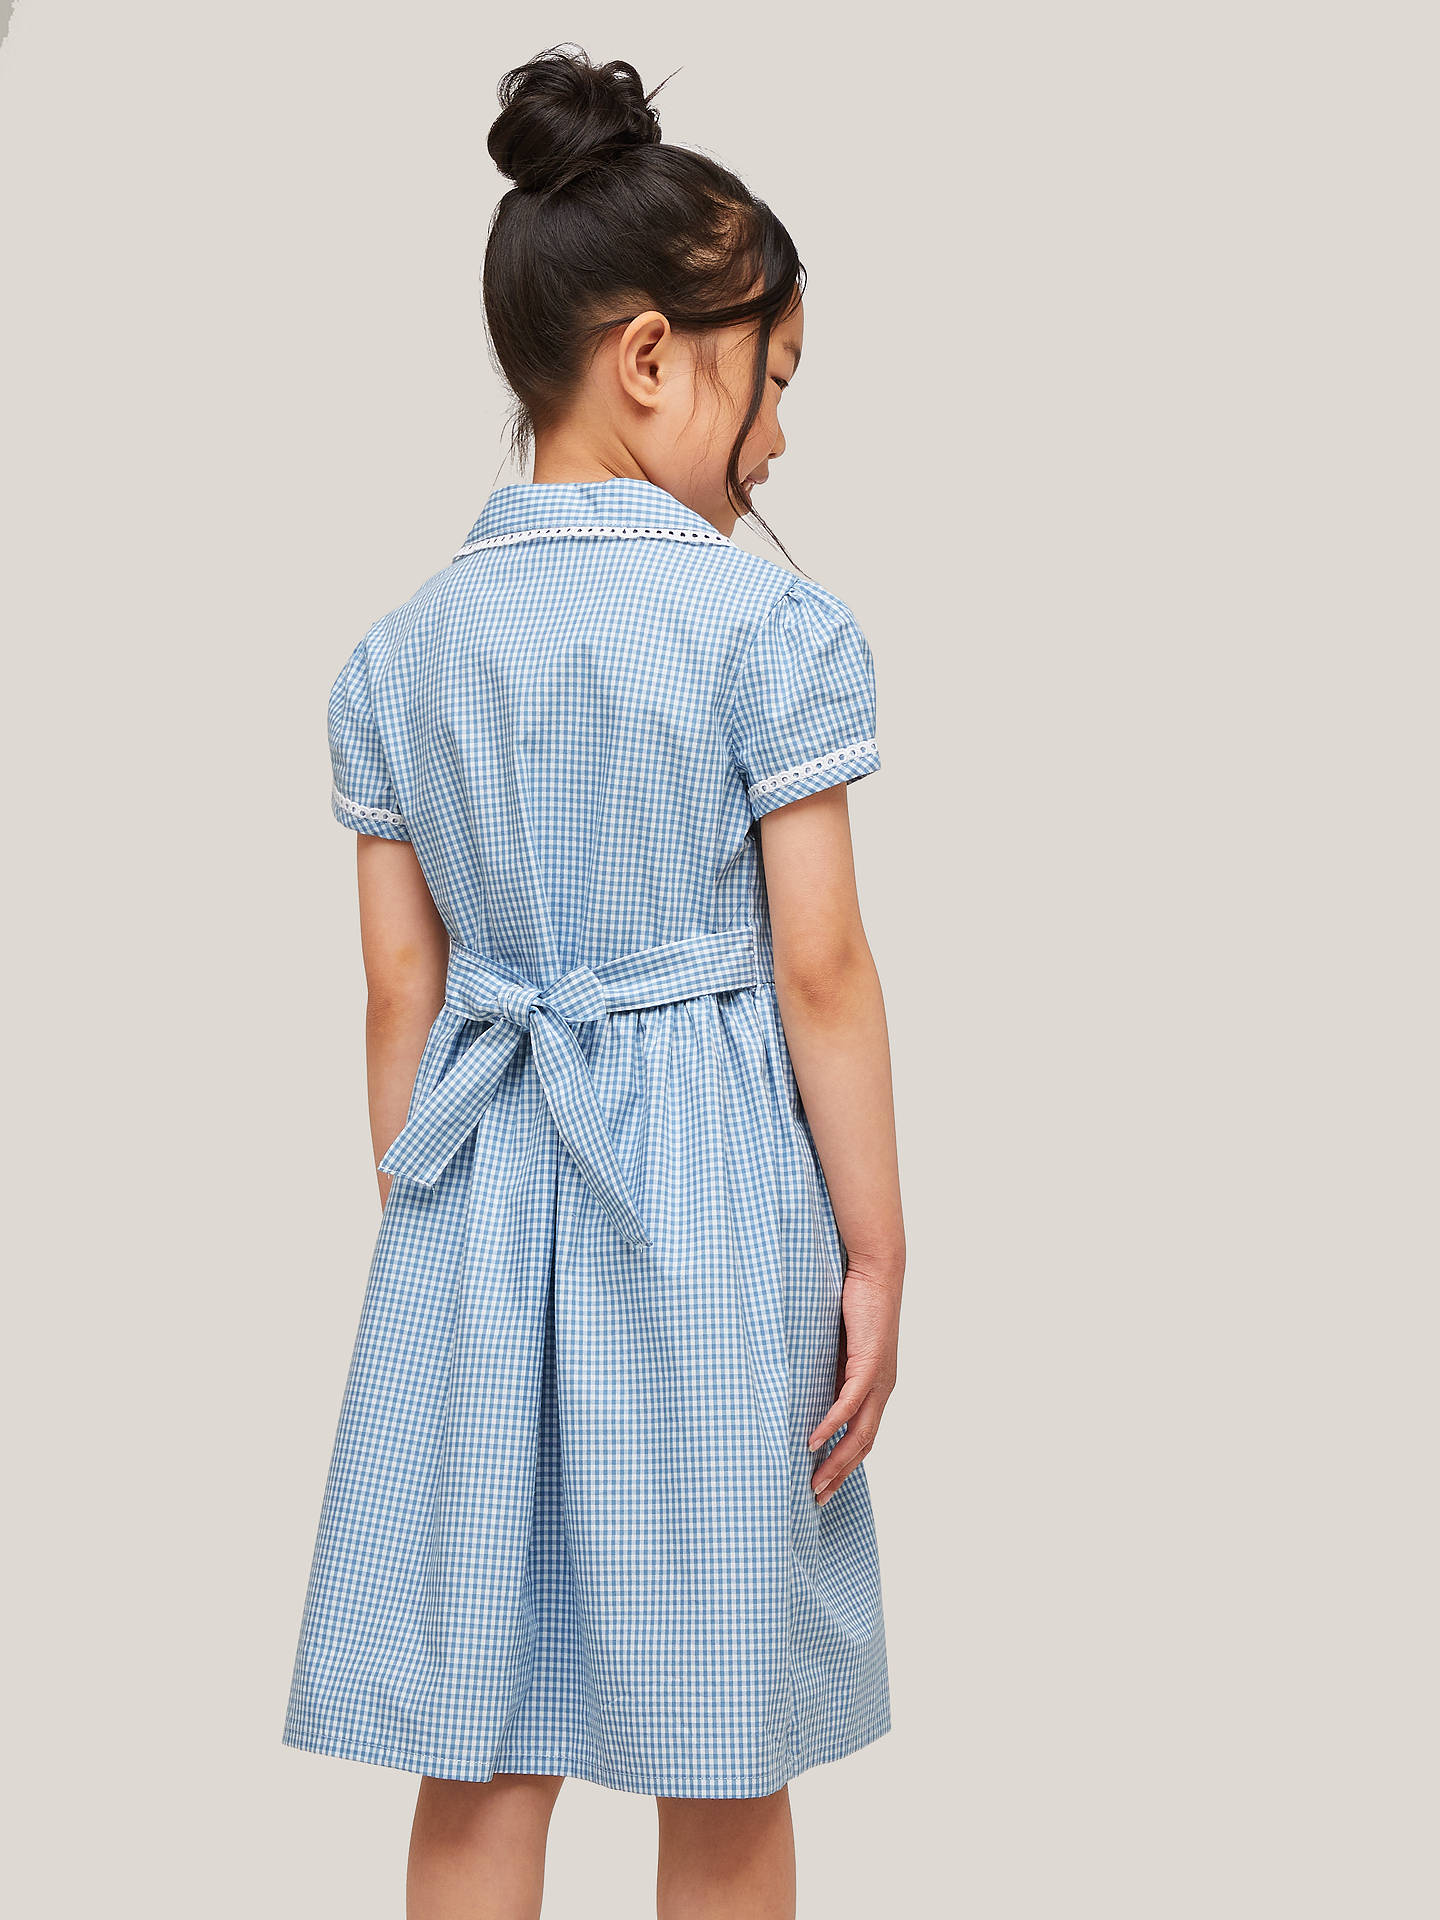 5ee7549ec3d0a Buy John Lewis & Partners Gingham Cotton School Summer Dress, Blue, 4 years  Online ...